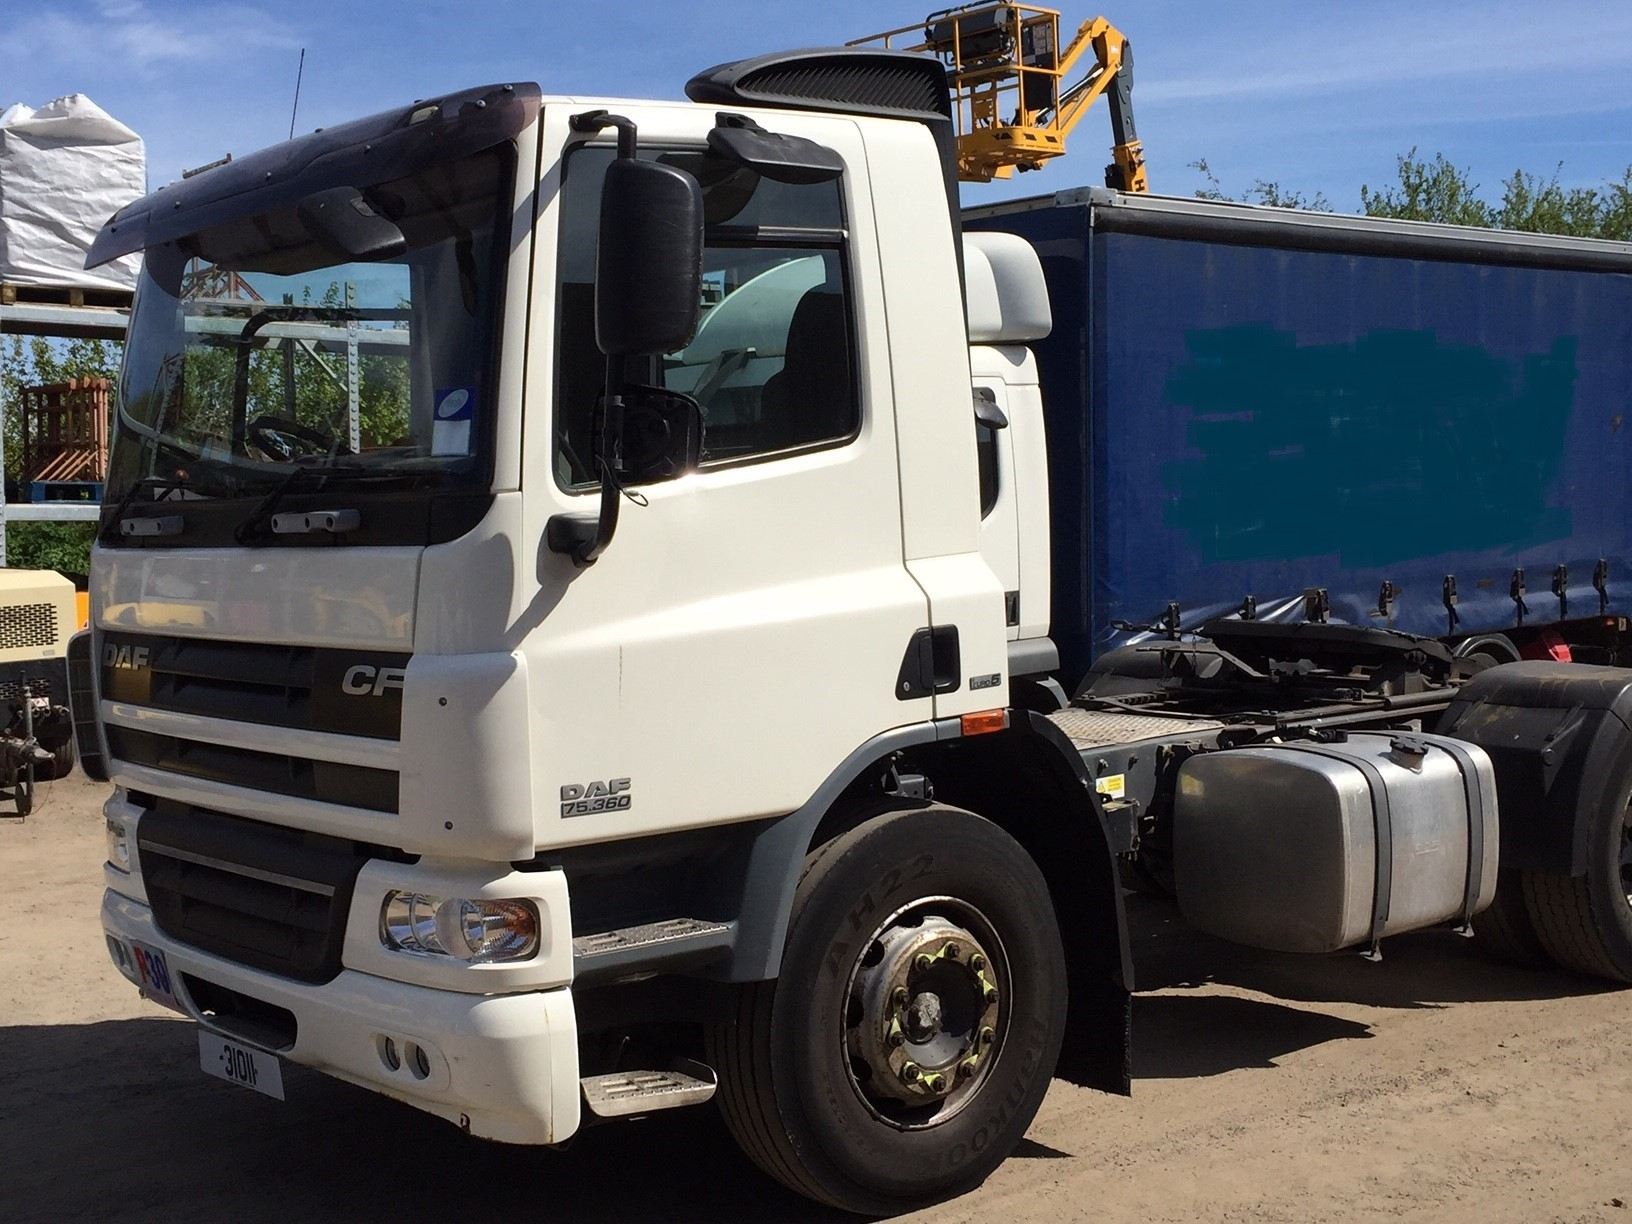 DAF CF75 Artic Unit Image